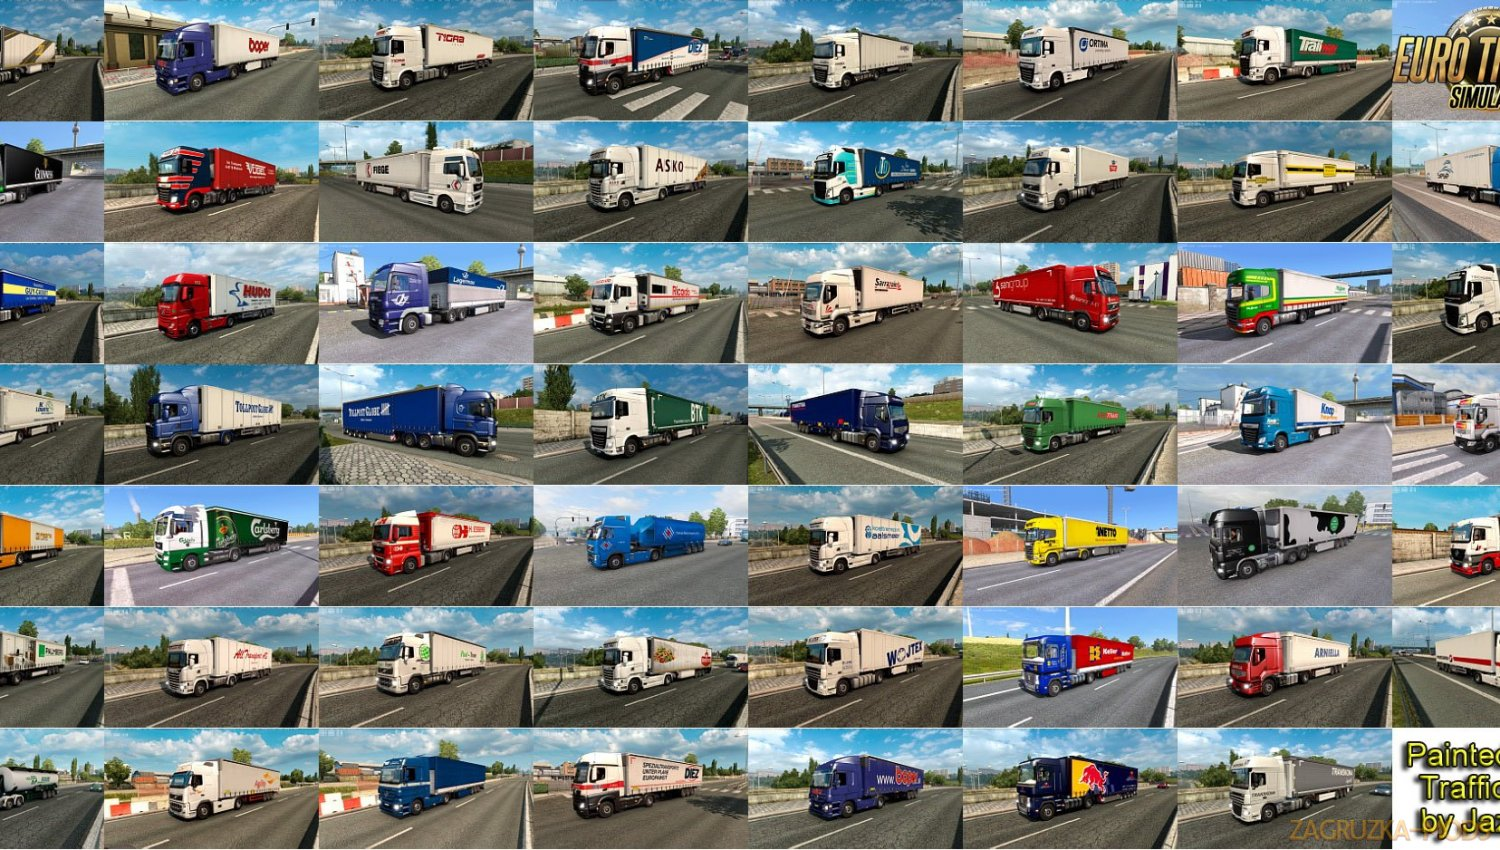 Painted Truck Traffic Pack v7.4 by Jazzycat